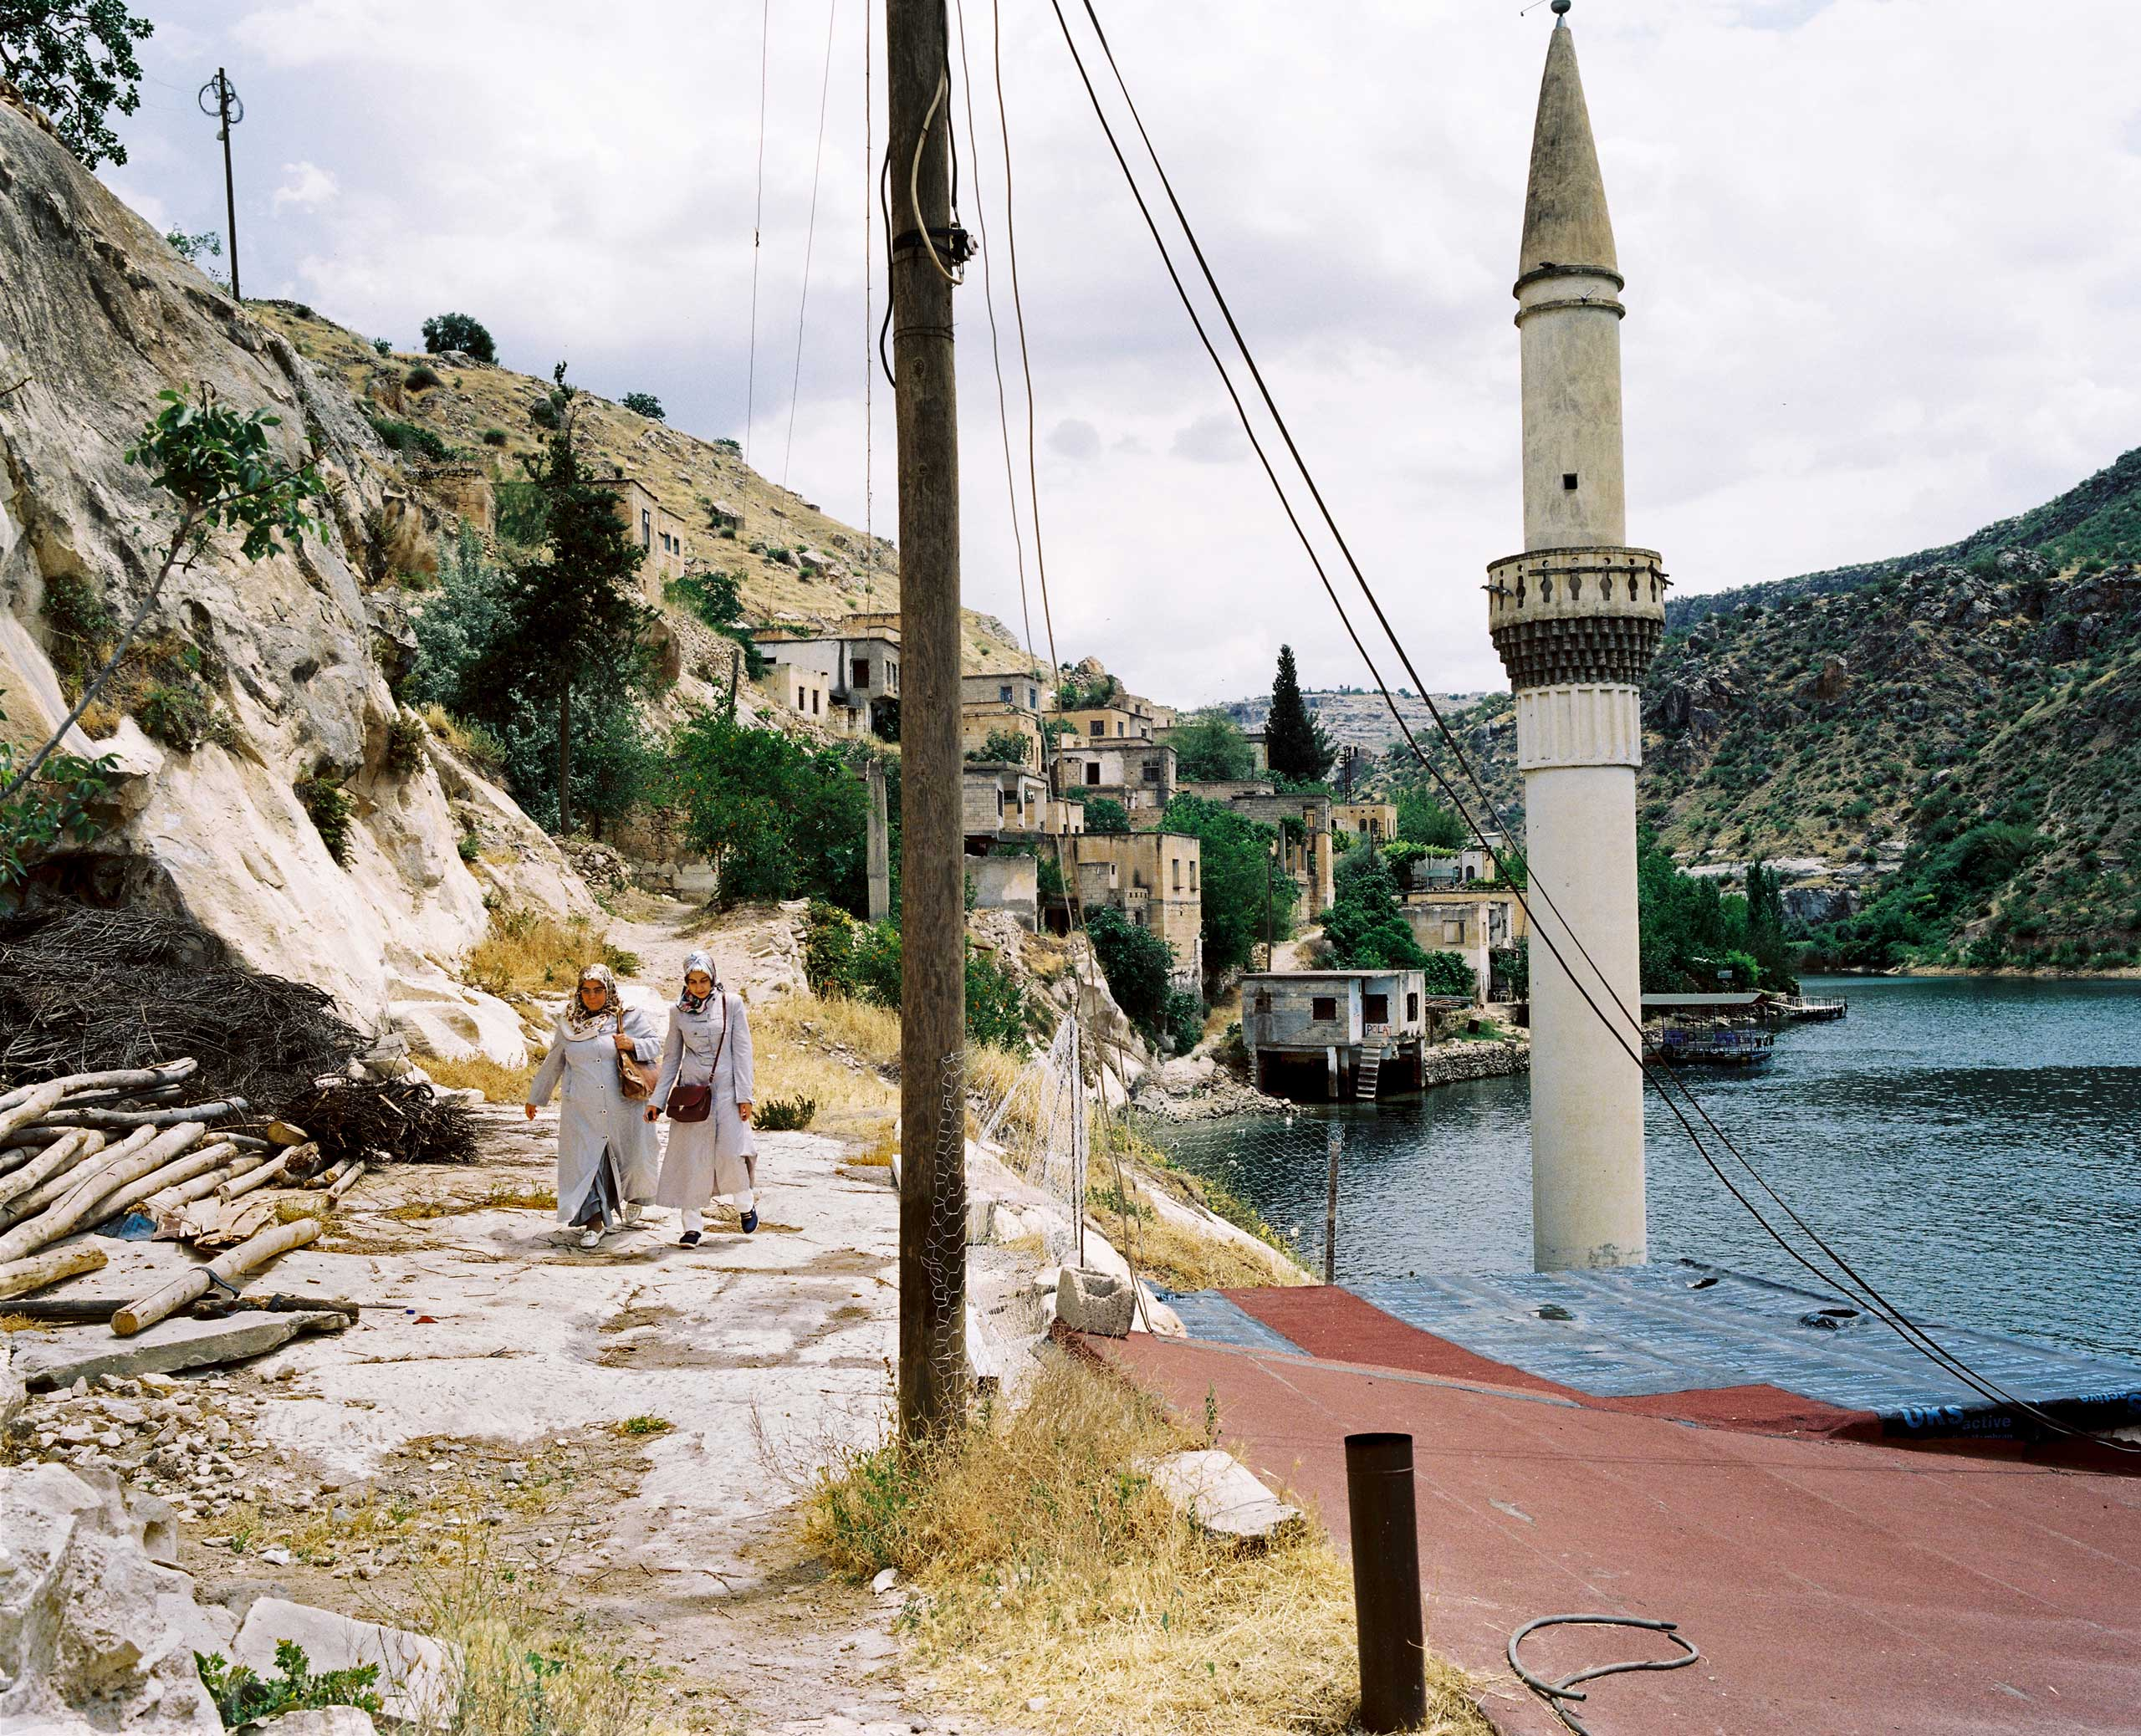 Local tourists visit the former village of Savaçan, flooded by the reservoir lake of the Birecik Dam on the Euphrates River. Turkey.